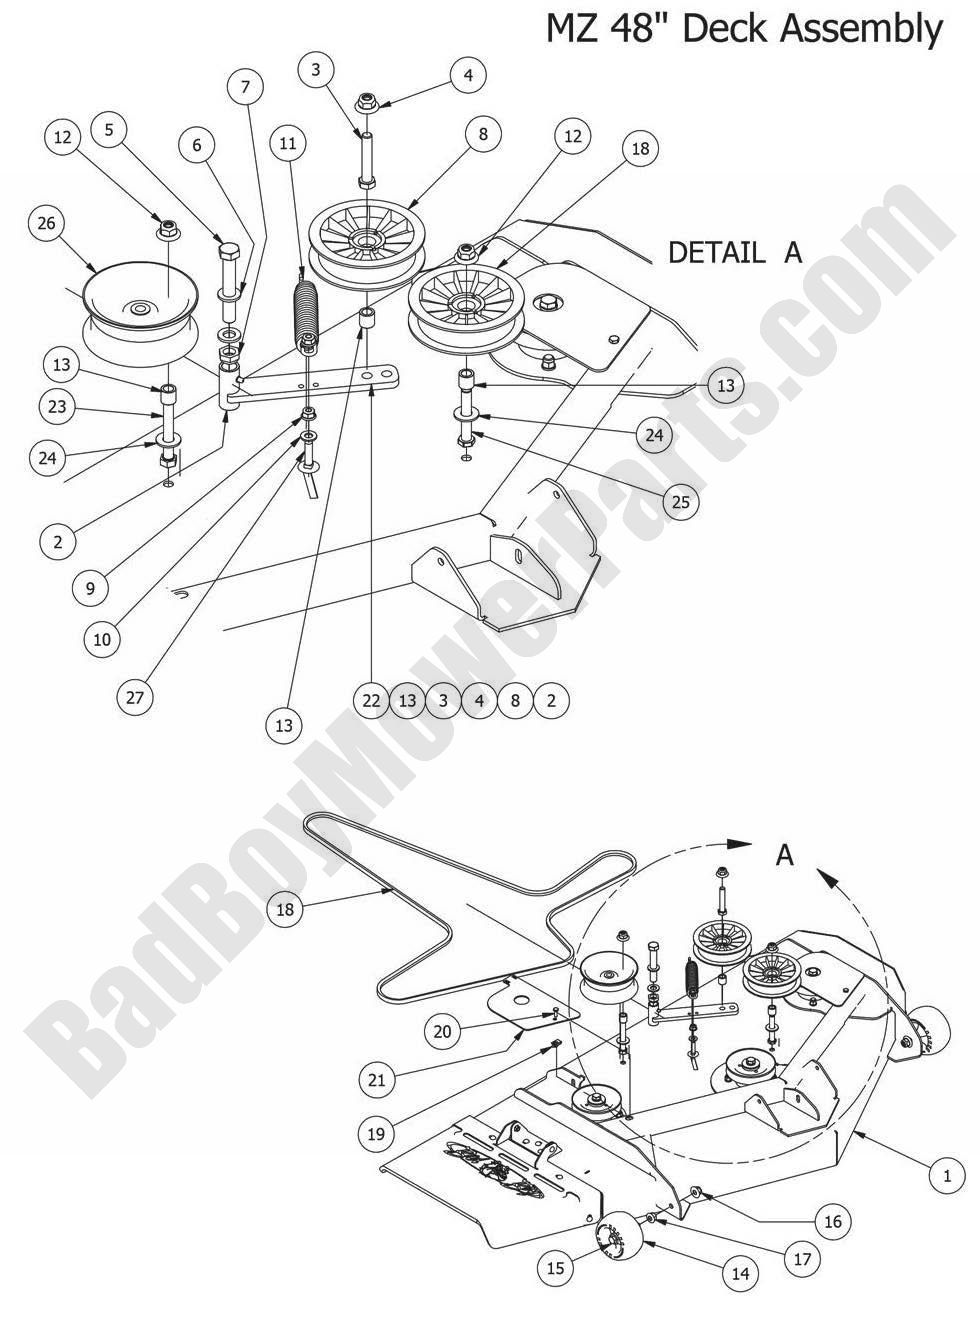 bad boy mowers wiring diagram    bad       boy       mower    belt replacement image of belt     bad       boy       mower    belt replacement image of belt